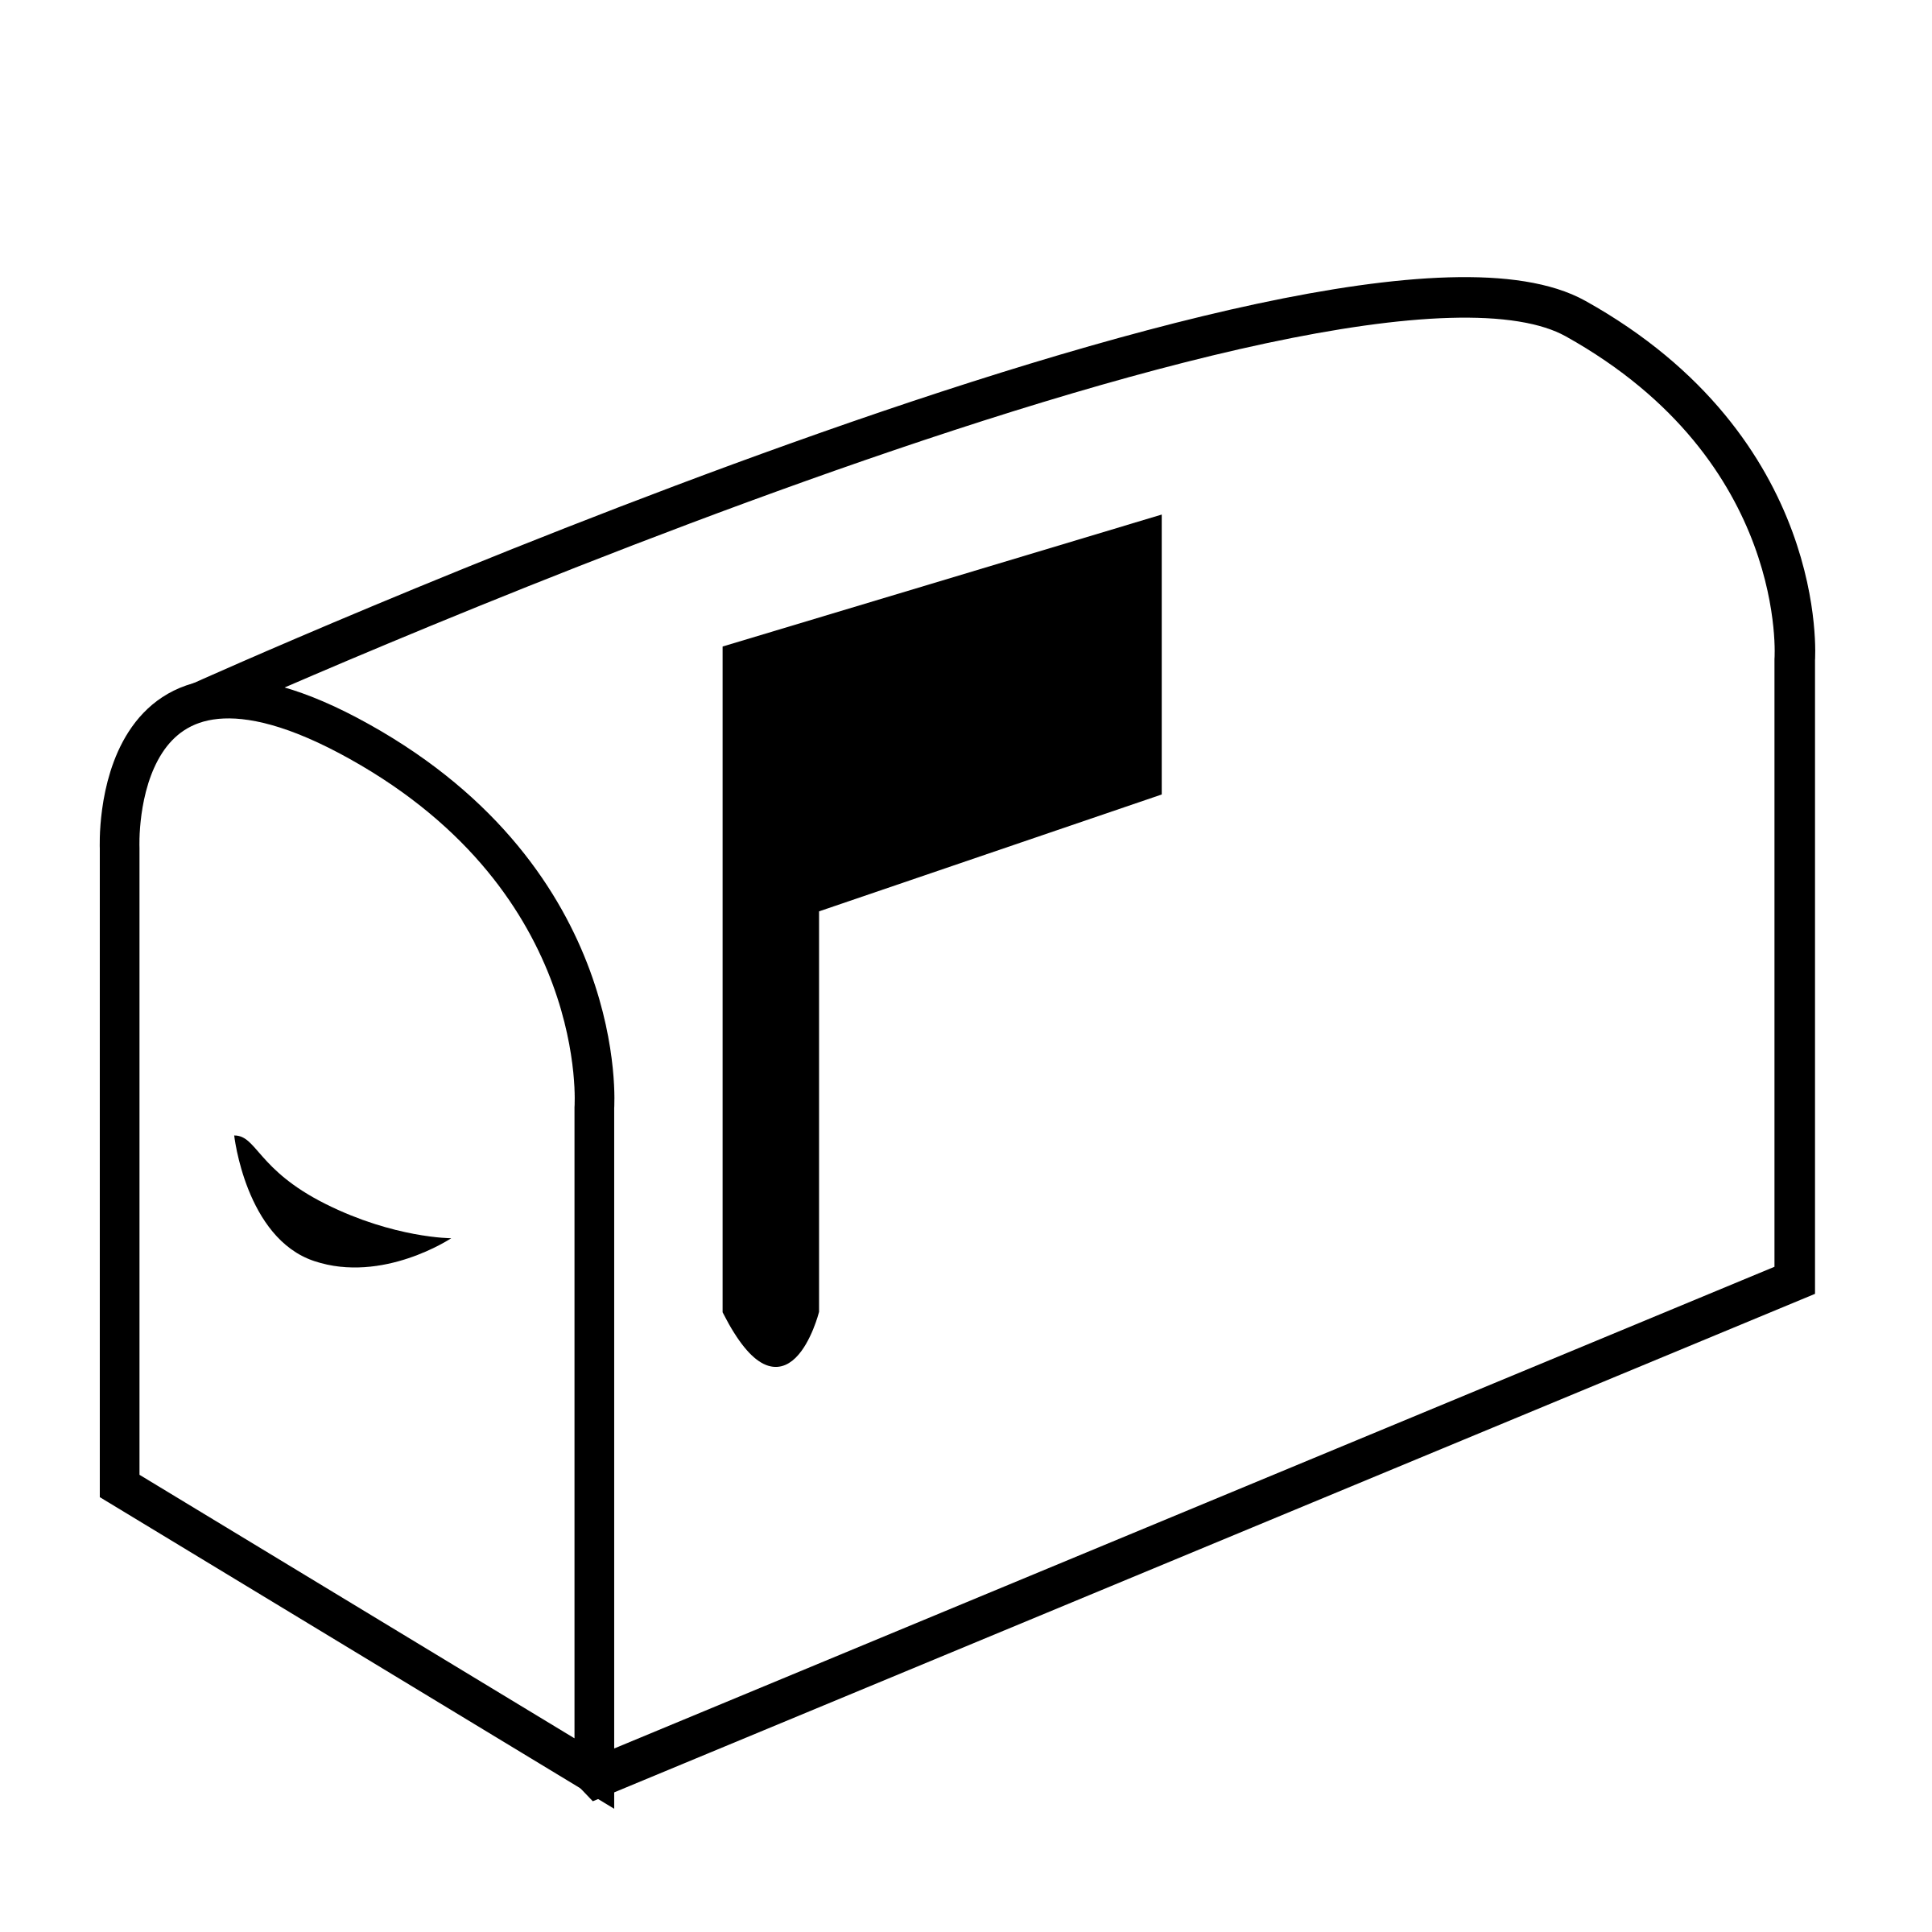 Mailbox Mail Mail With Mail Clip Art At Clker Vector Clip Art